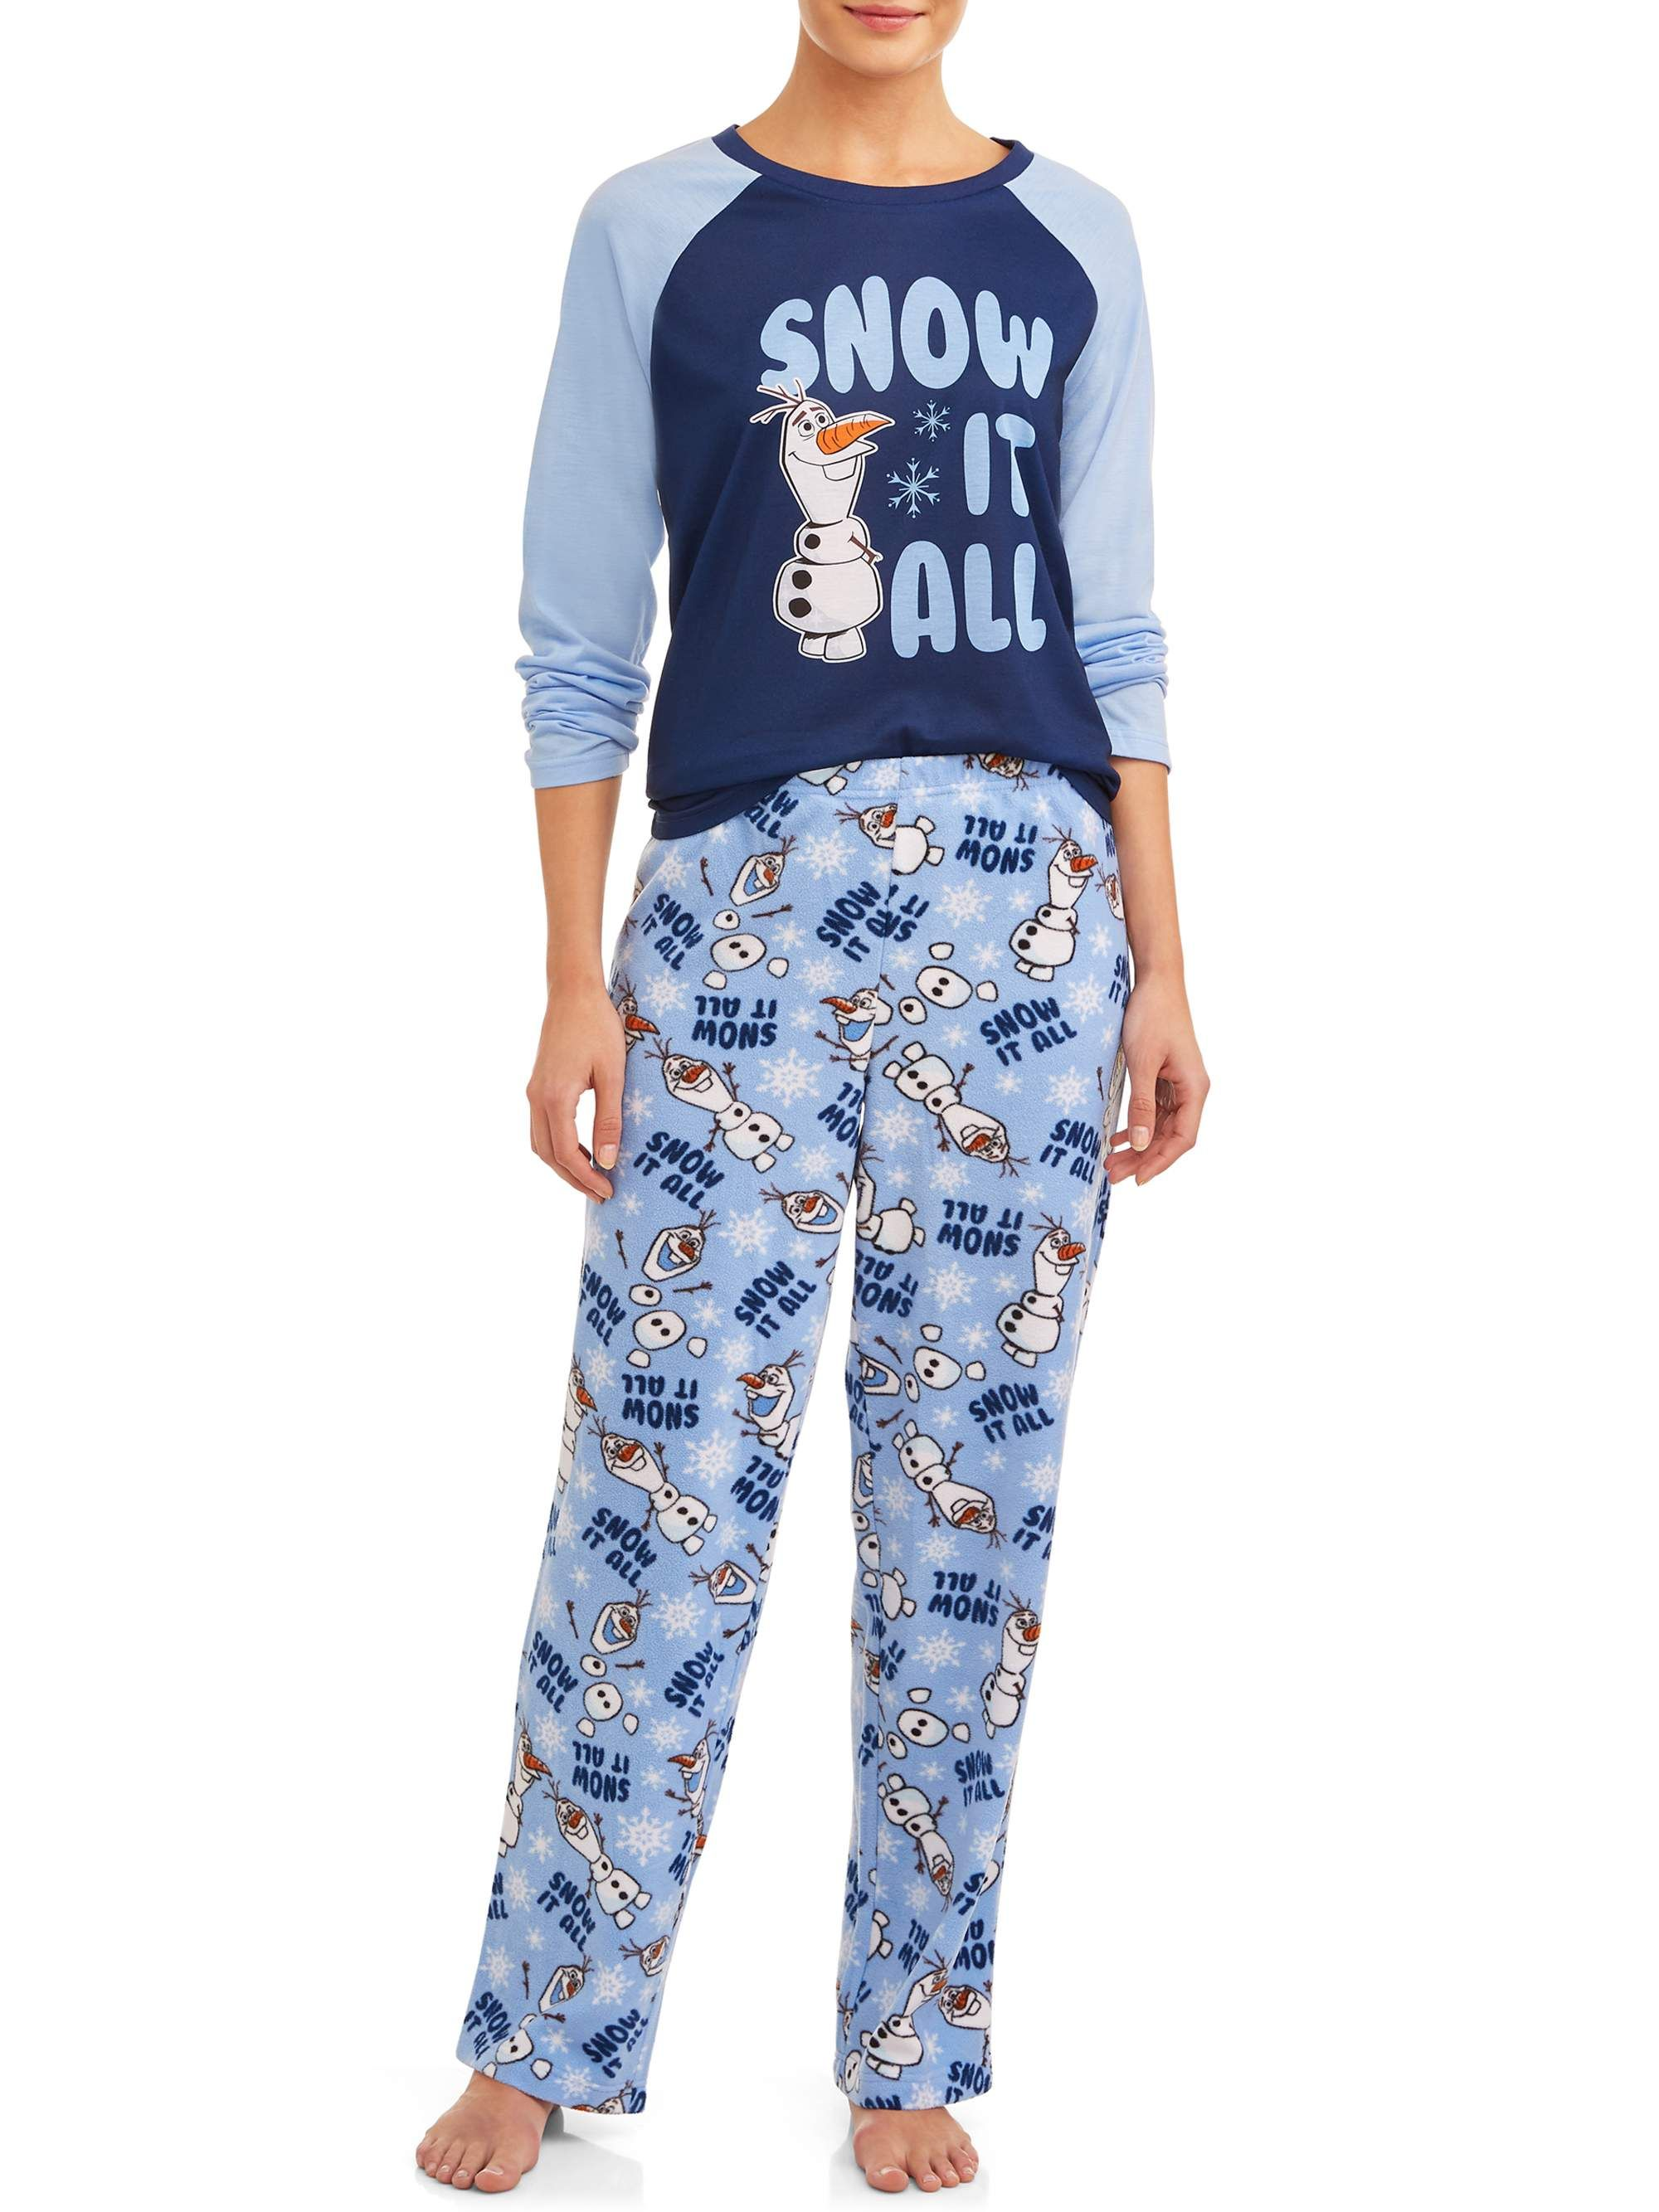 New Disney Pajamas Found At Walmart That Are Cute and